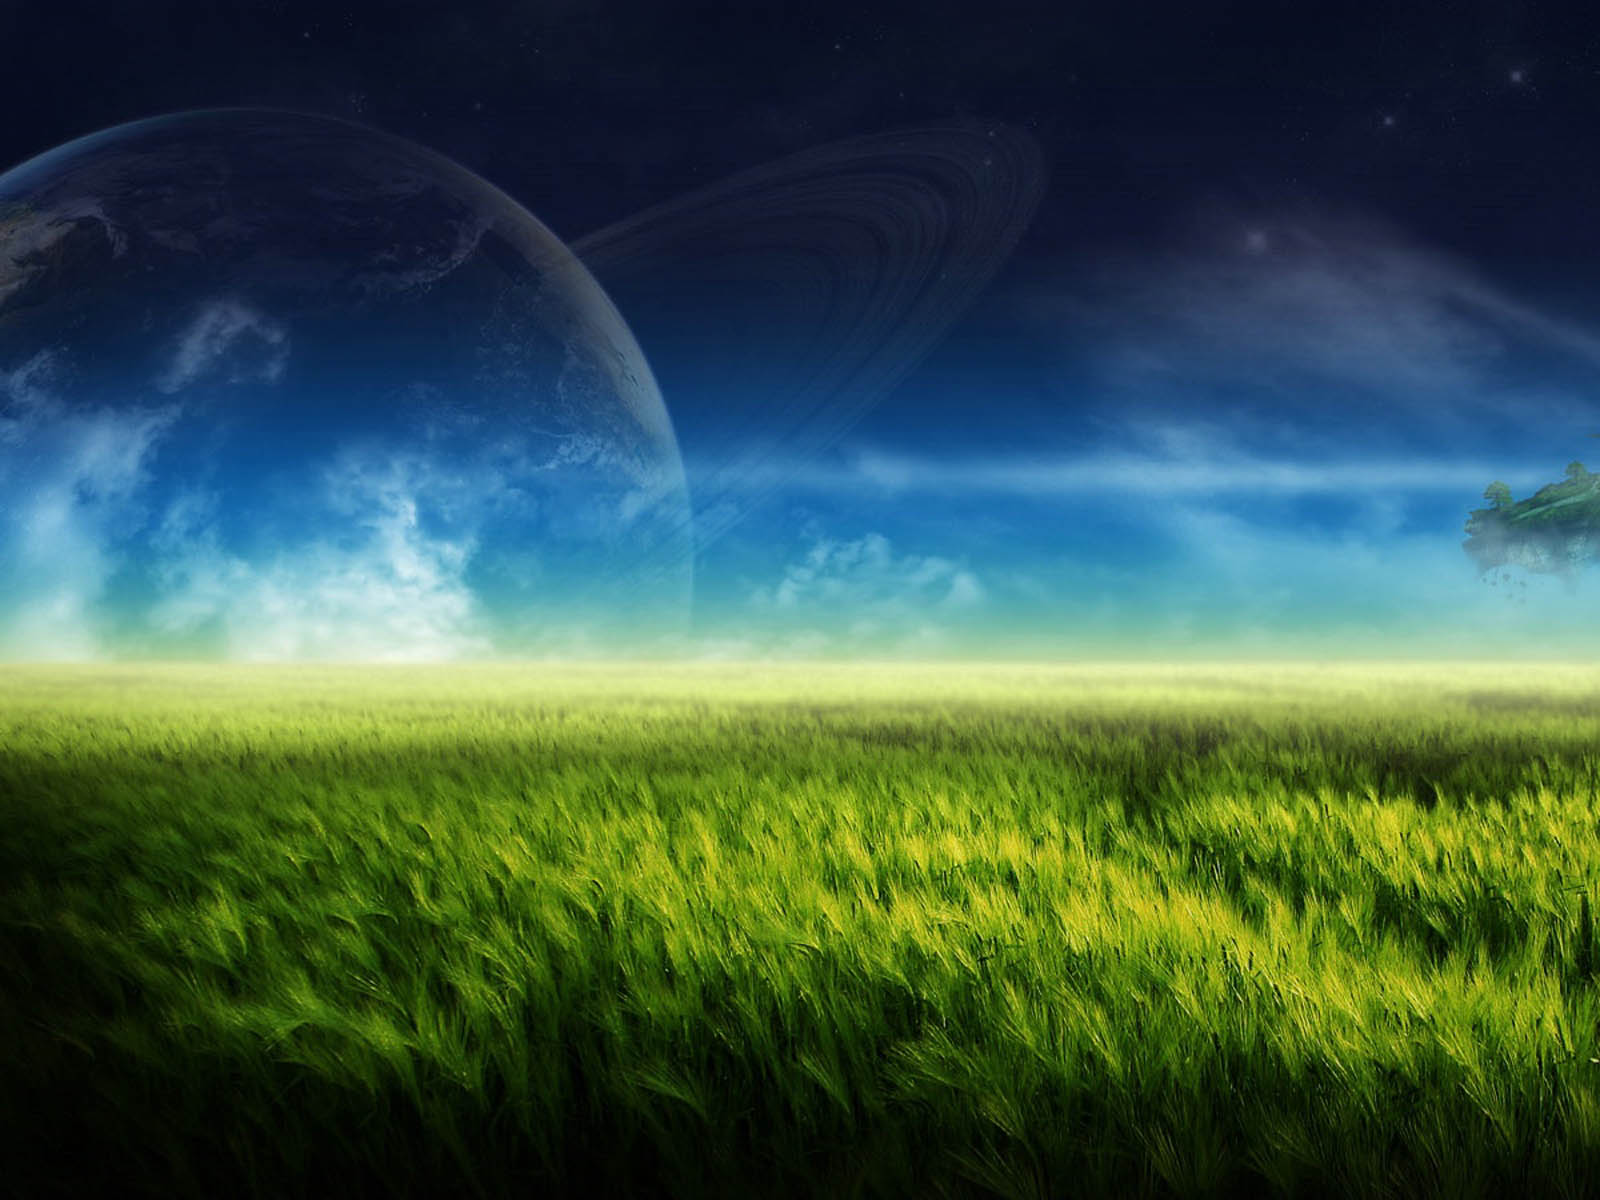 Wallpapers fantasy nature for In wallpaper